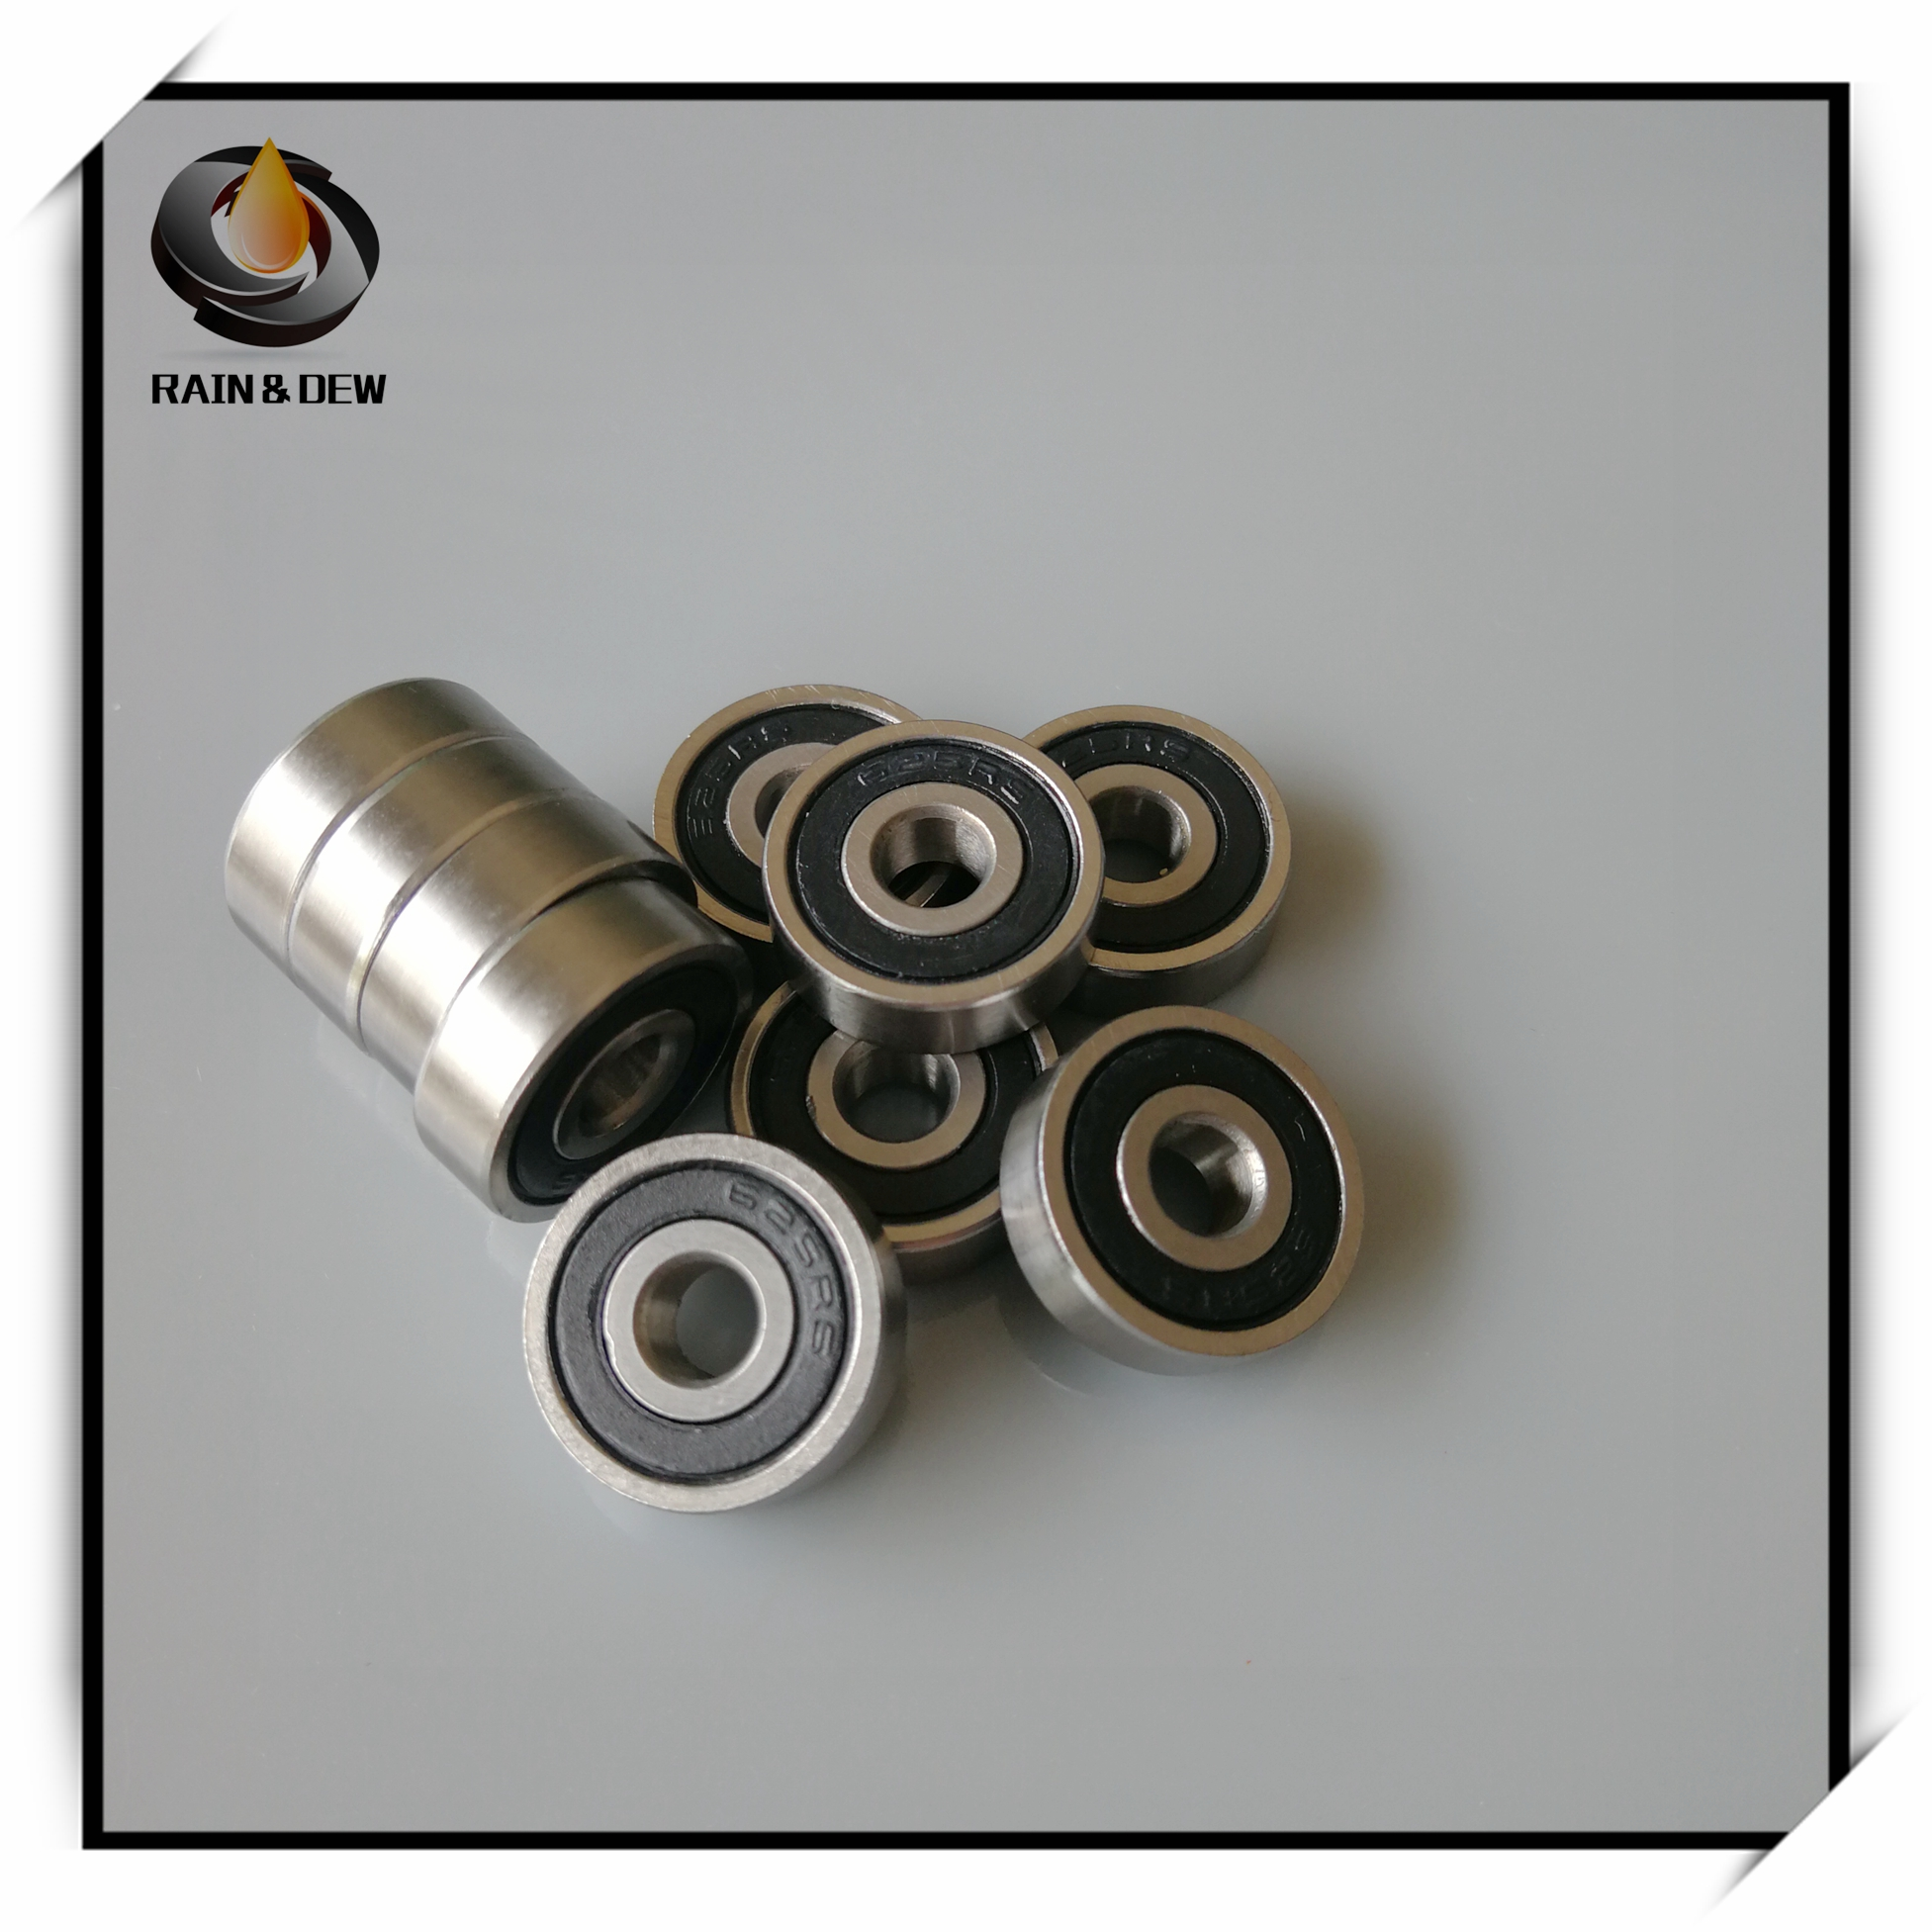 10Pcs 625RS Bearing ABEC-7 5*16*5 mm Miniature Sealed 625-2RS Ball Bearings 625 2RS For VORON Mobius 2/3 3D Printer